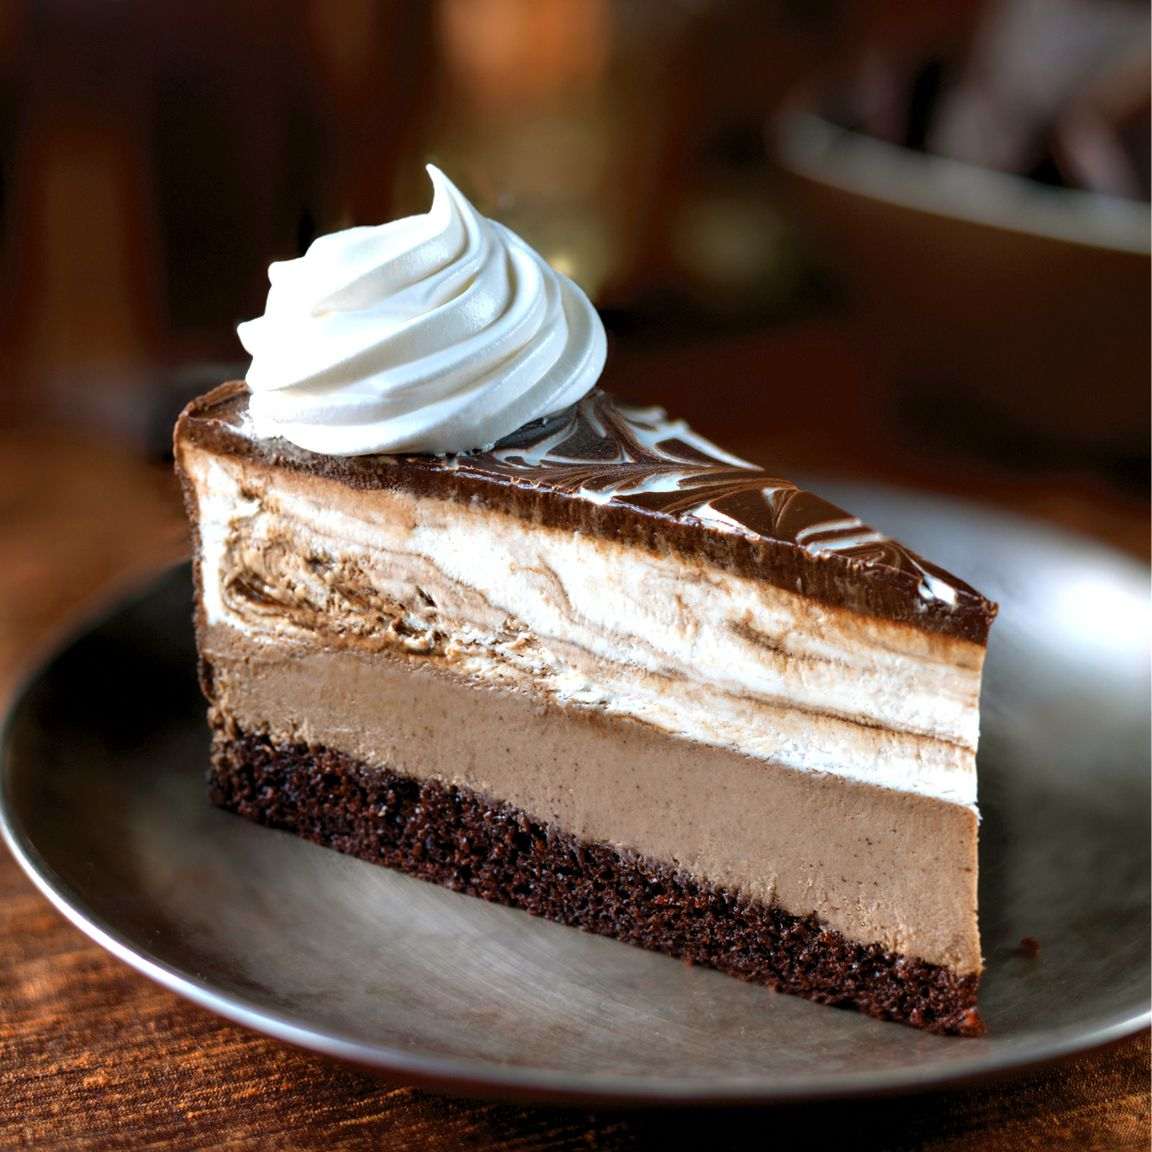 Tuxedo Mousse cheesecake #food #chocolate | Food & Drink ...